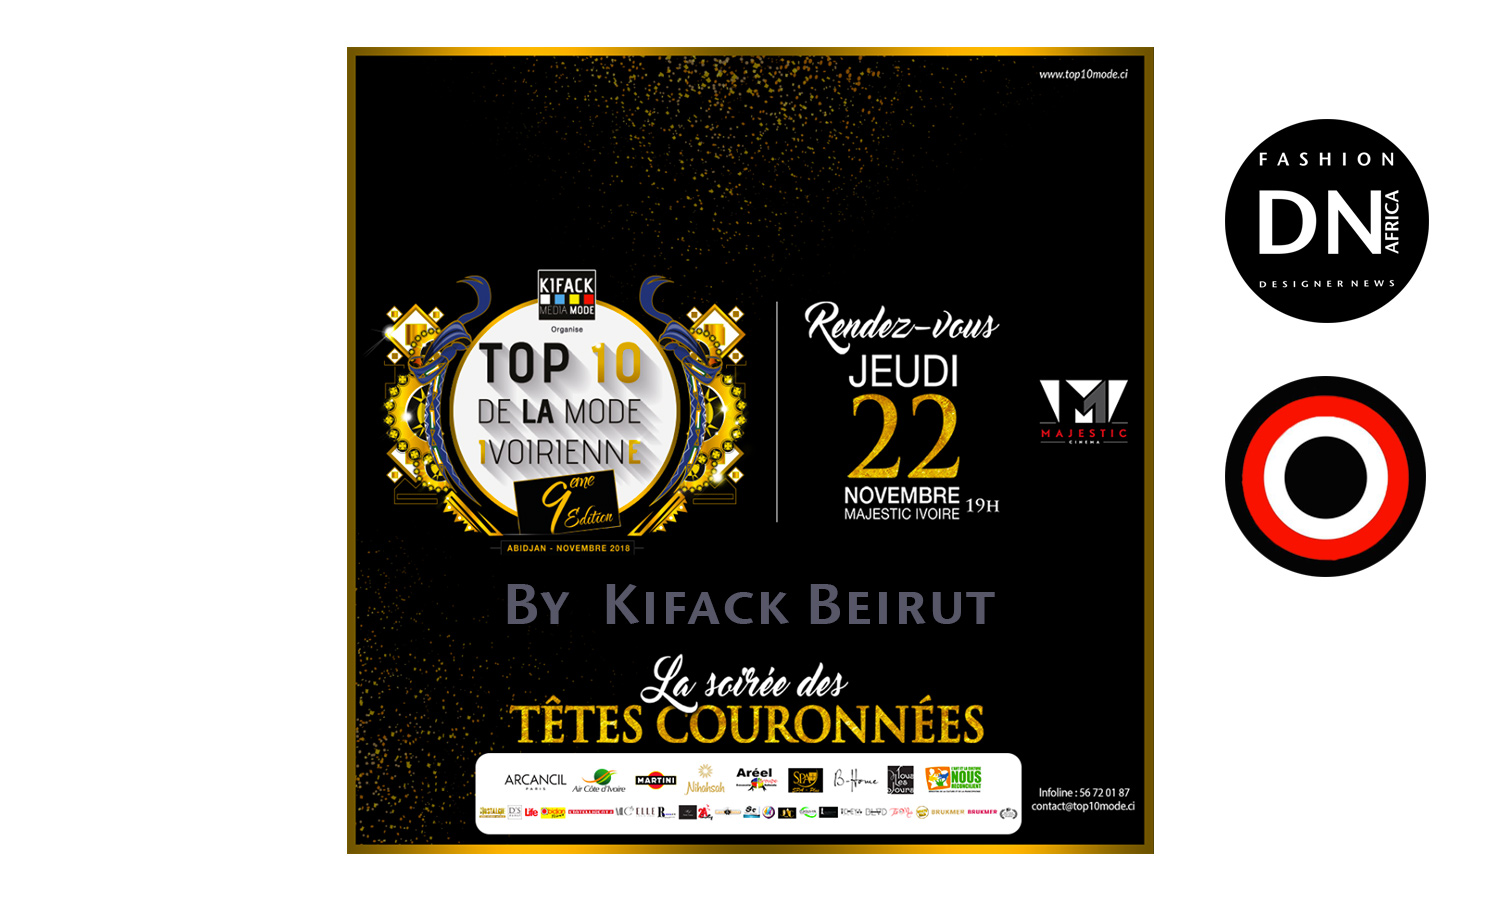 AFRICAN FASHION STYLE MAGAZINE - TOP 10 DE LA MODE IVOIRIENNE 2018 SEASON 9 - BEST INFLUENCER OF THE YEAR - ORGANIZER Kifack Beyrouth - ABIDJAN IVORY COAST - Official Media Partner DN AFRICA -STUDIO 24 NIGERIA - STUDIO 24 INTERNATIONAL - Ifeanyi Christopher Oputa MD AND CEO OF COLVI LIMITED AND STUDIO 24 - Location Majestic Ivoire of Sofitel Hotel Ivoire in Abidjan (Ivory Coast)